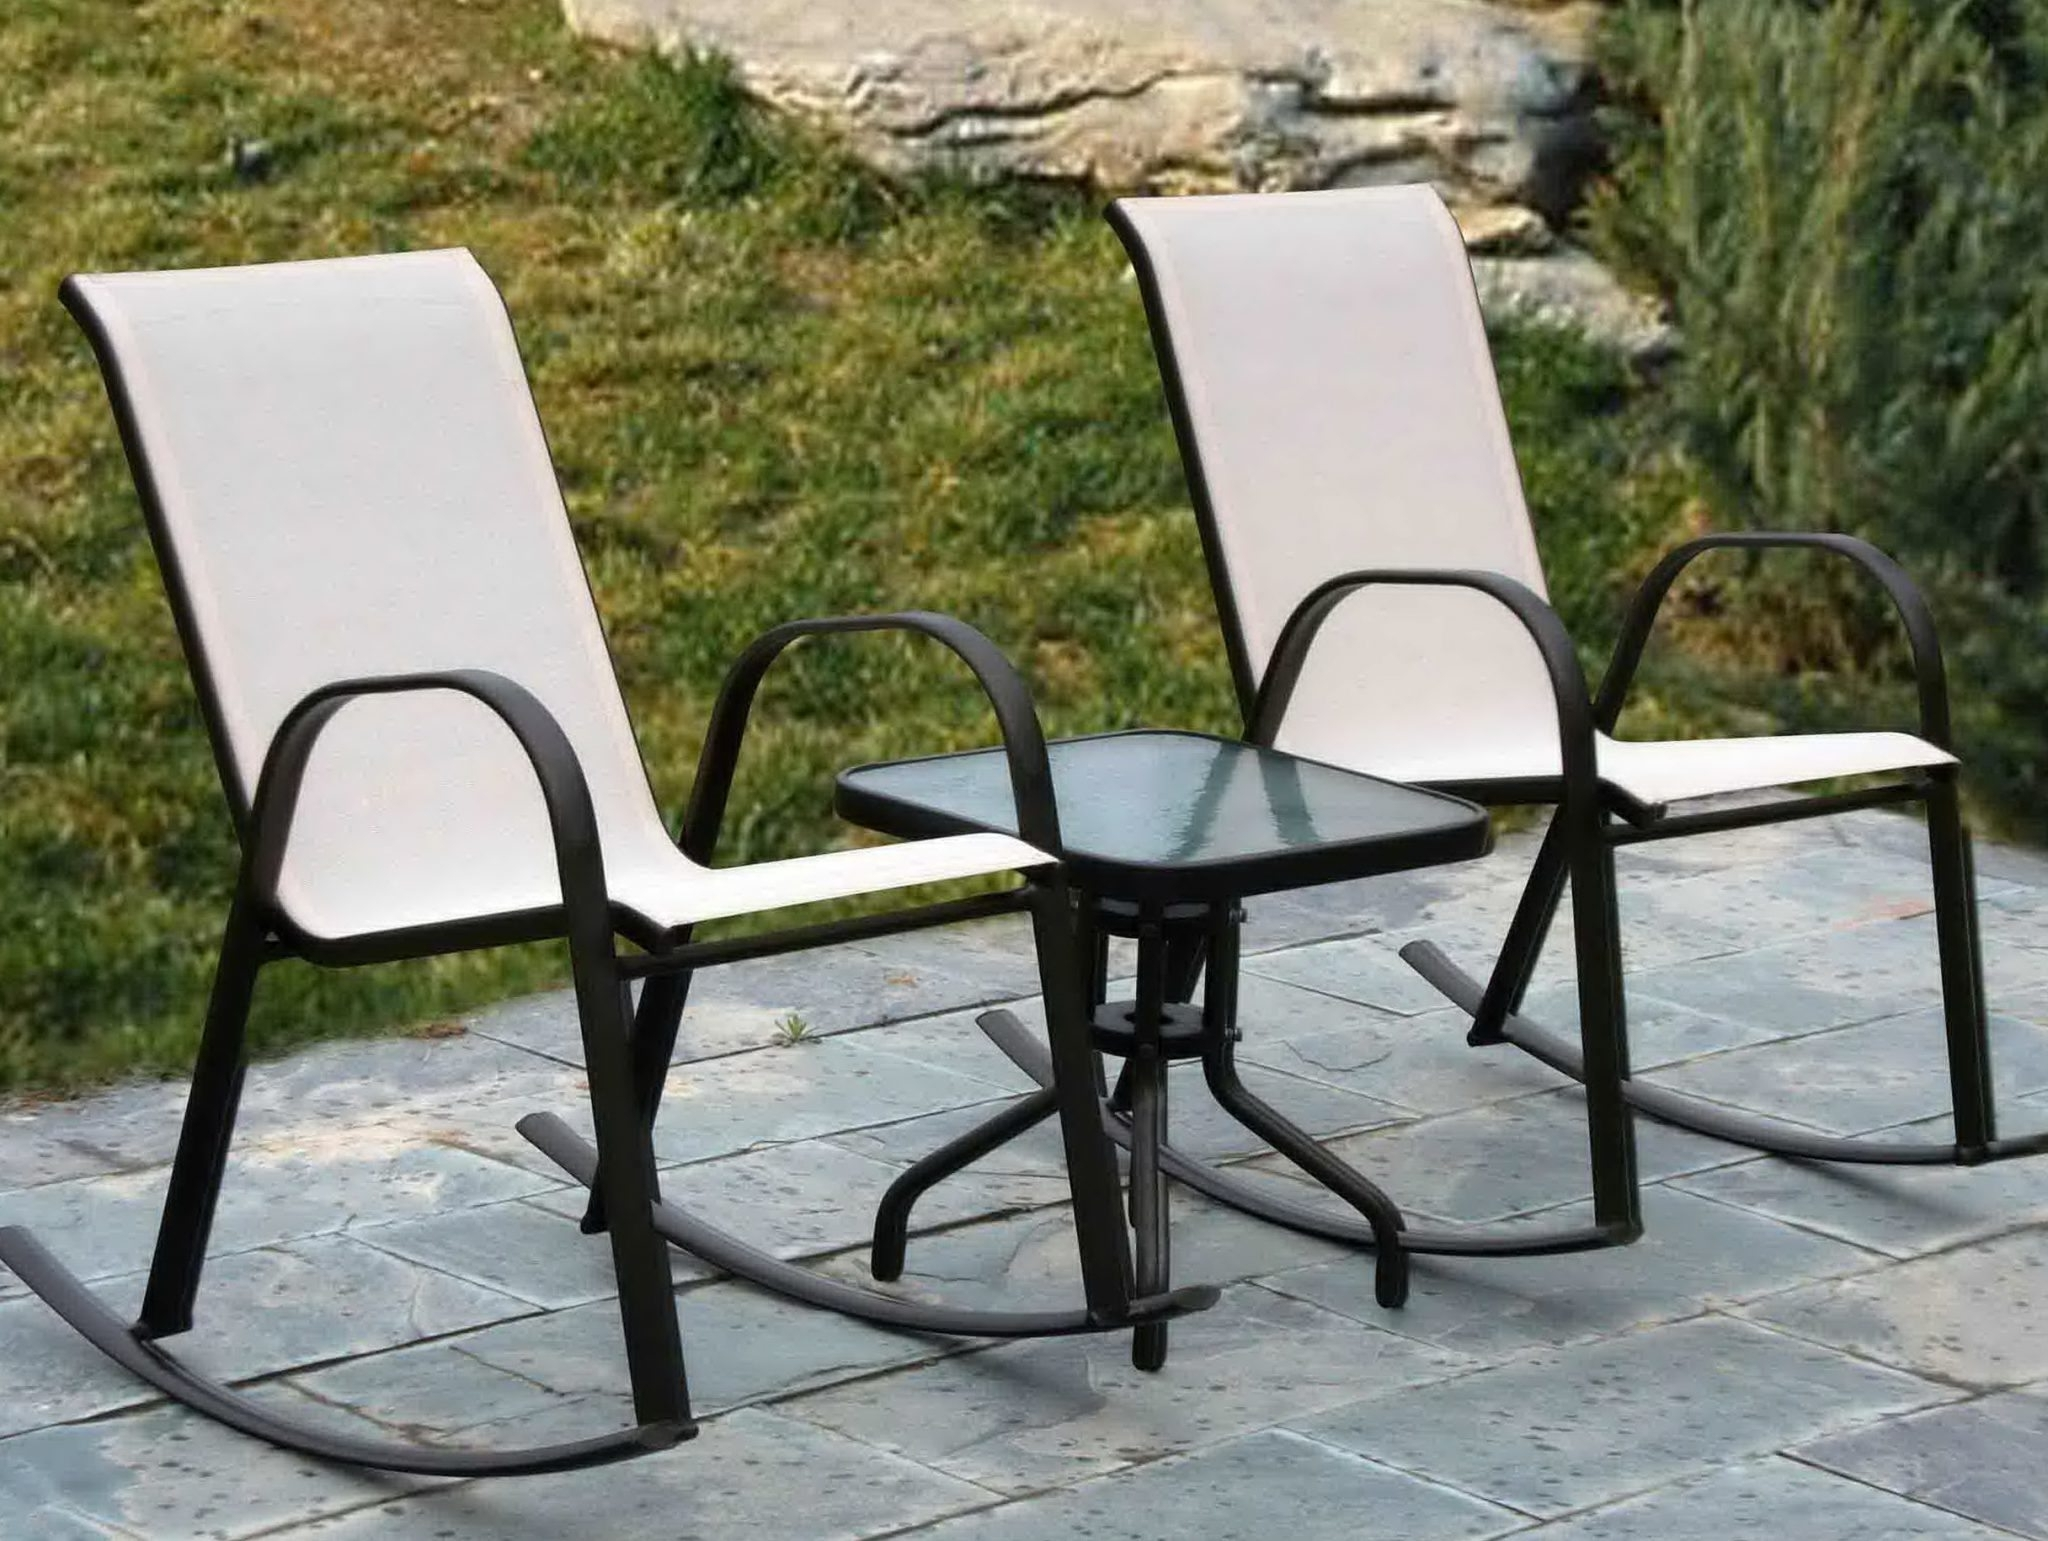 Patio Conversation Sets Without Cushions Within Widely Used Patio Furniture Without Cushions Beautiful Ideas Furniture Idea (View 15 of 20)